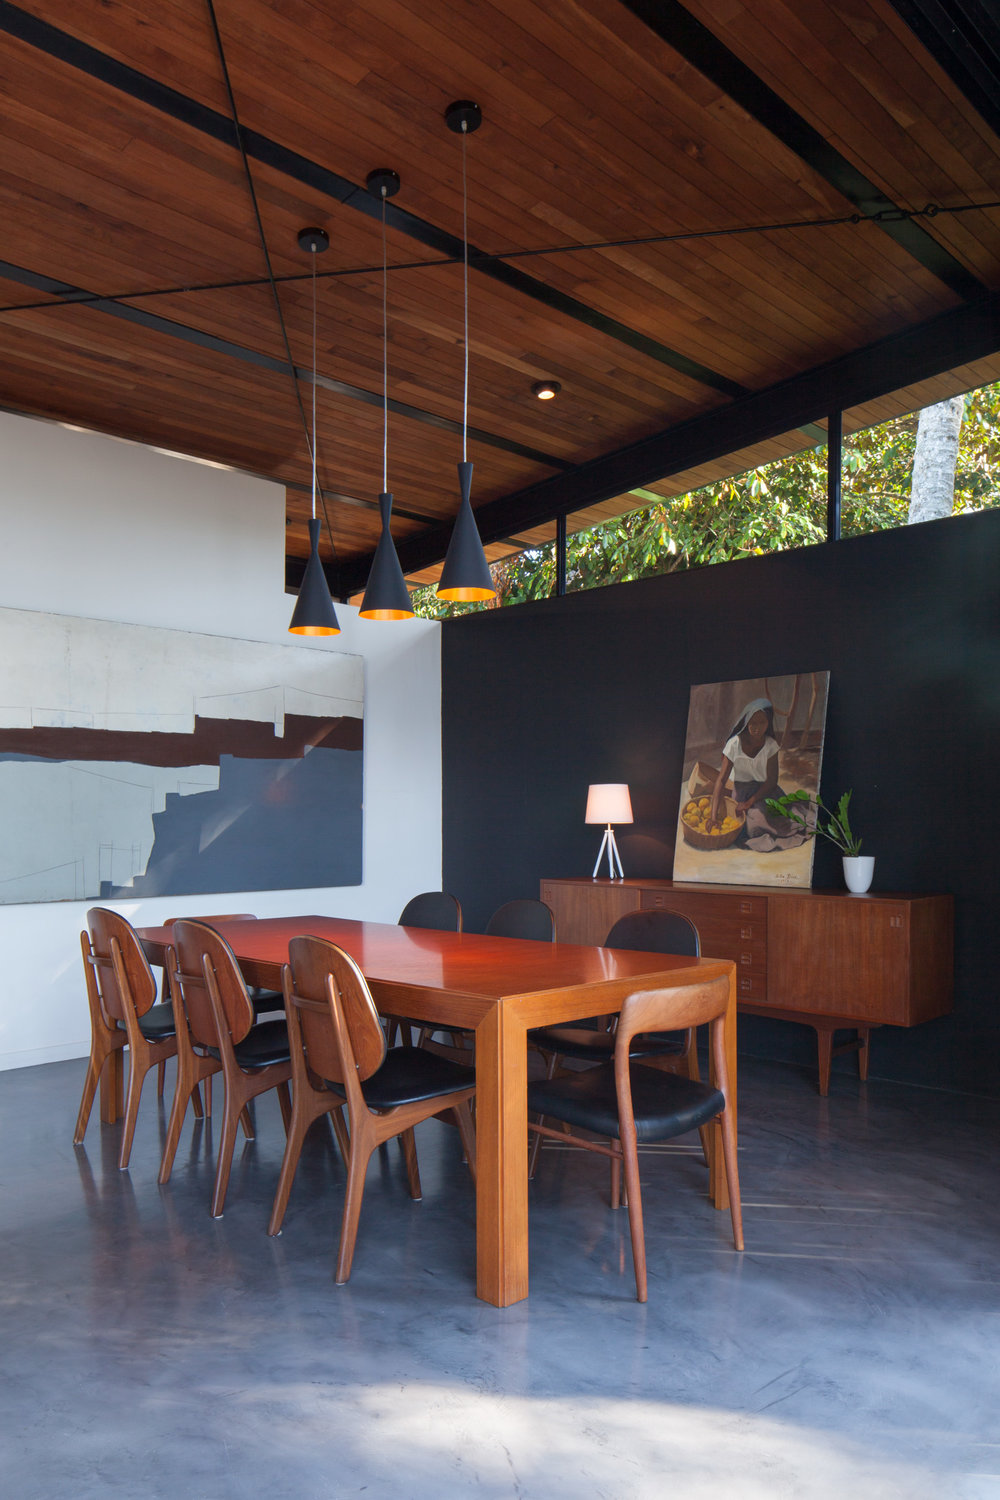 Jason_Bax_SQ_CDS_House_El_Salvador_Architecture_MG_1831.jpg